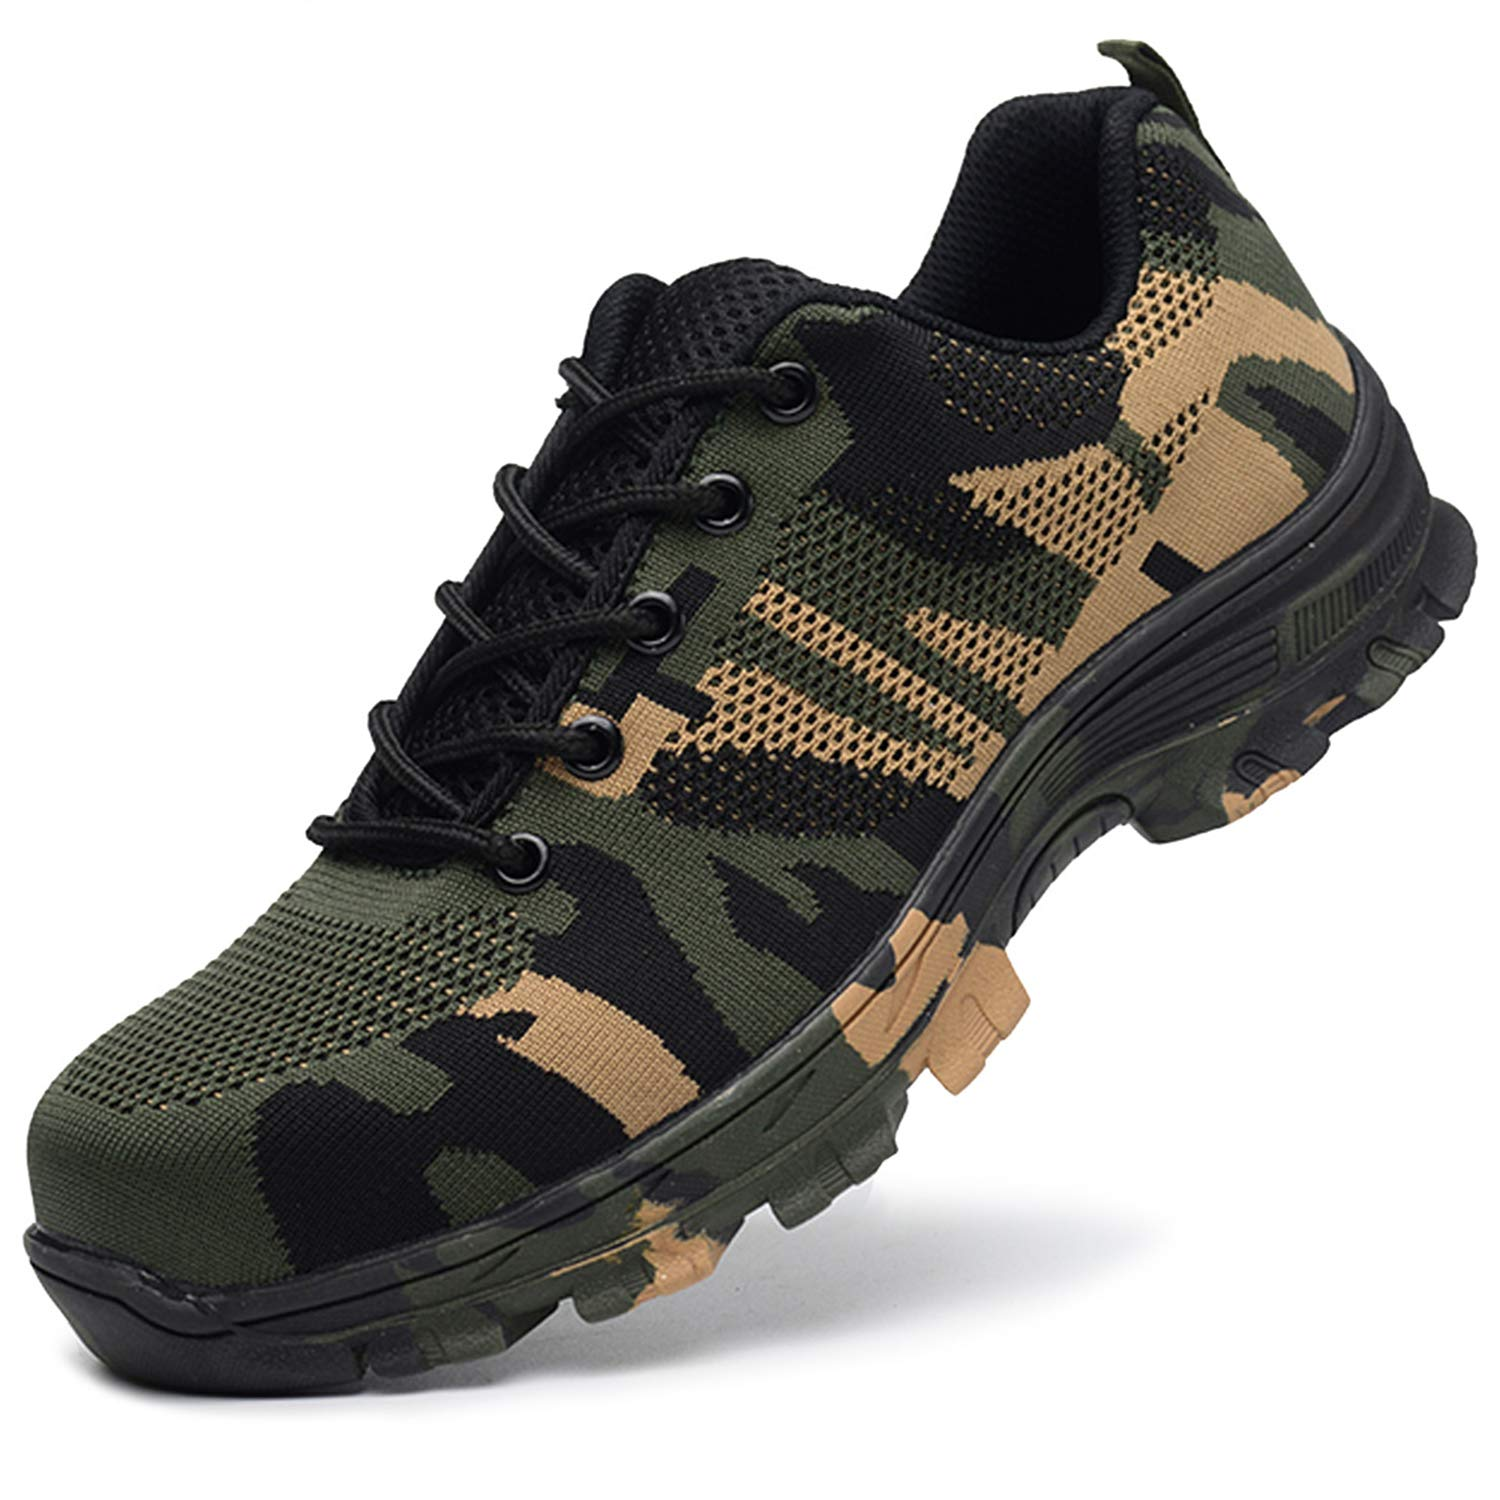 SUADEX Steel Toe Shoes Men, Womens Work Safety Shoes Industrial Construction Sneakers, Outdoor Hiking Trekking Trail Composite Shoes Camouflage Green Size 14.5 Women / 13 Men by SUADEX